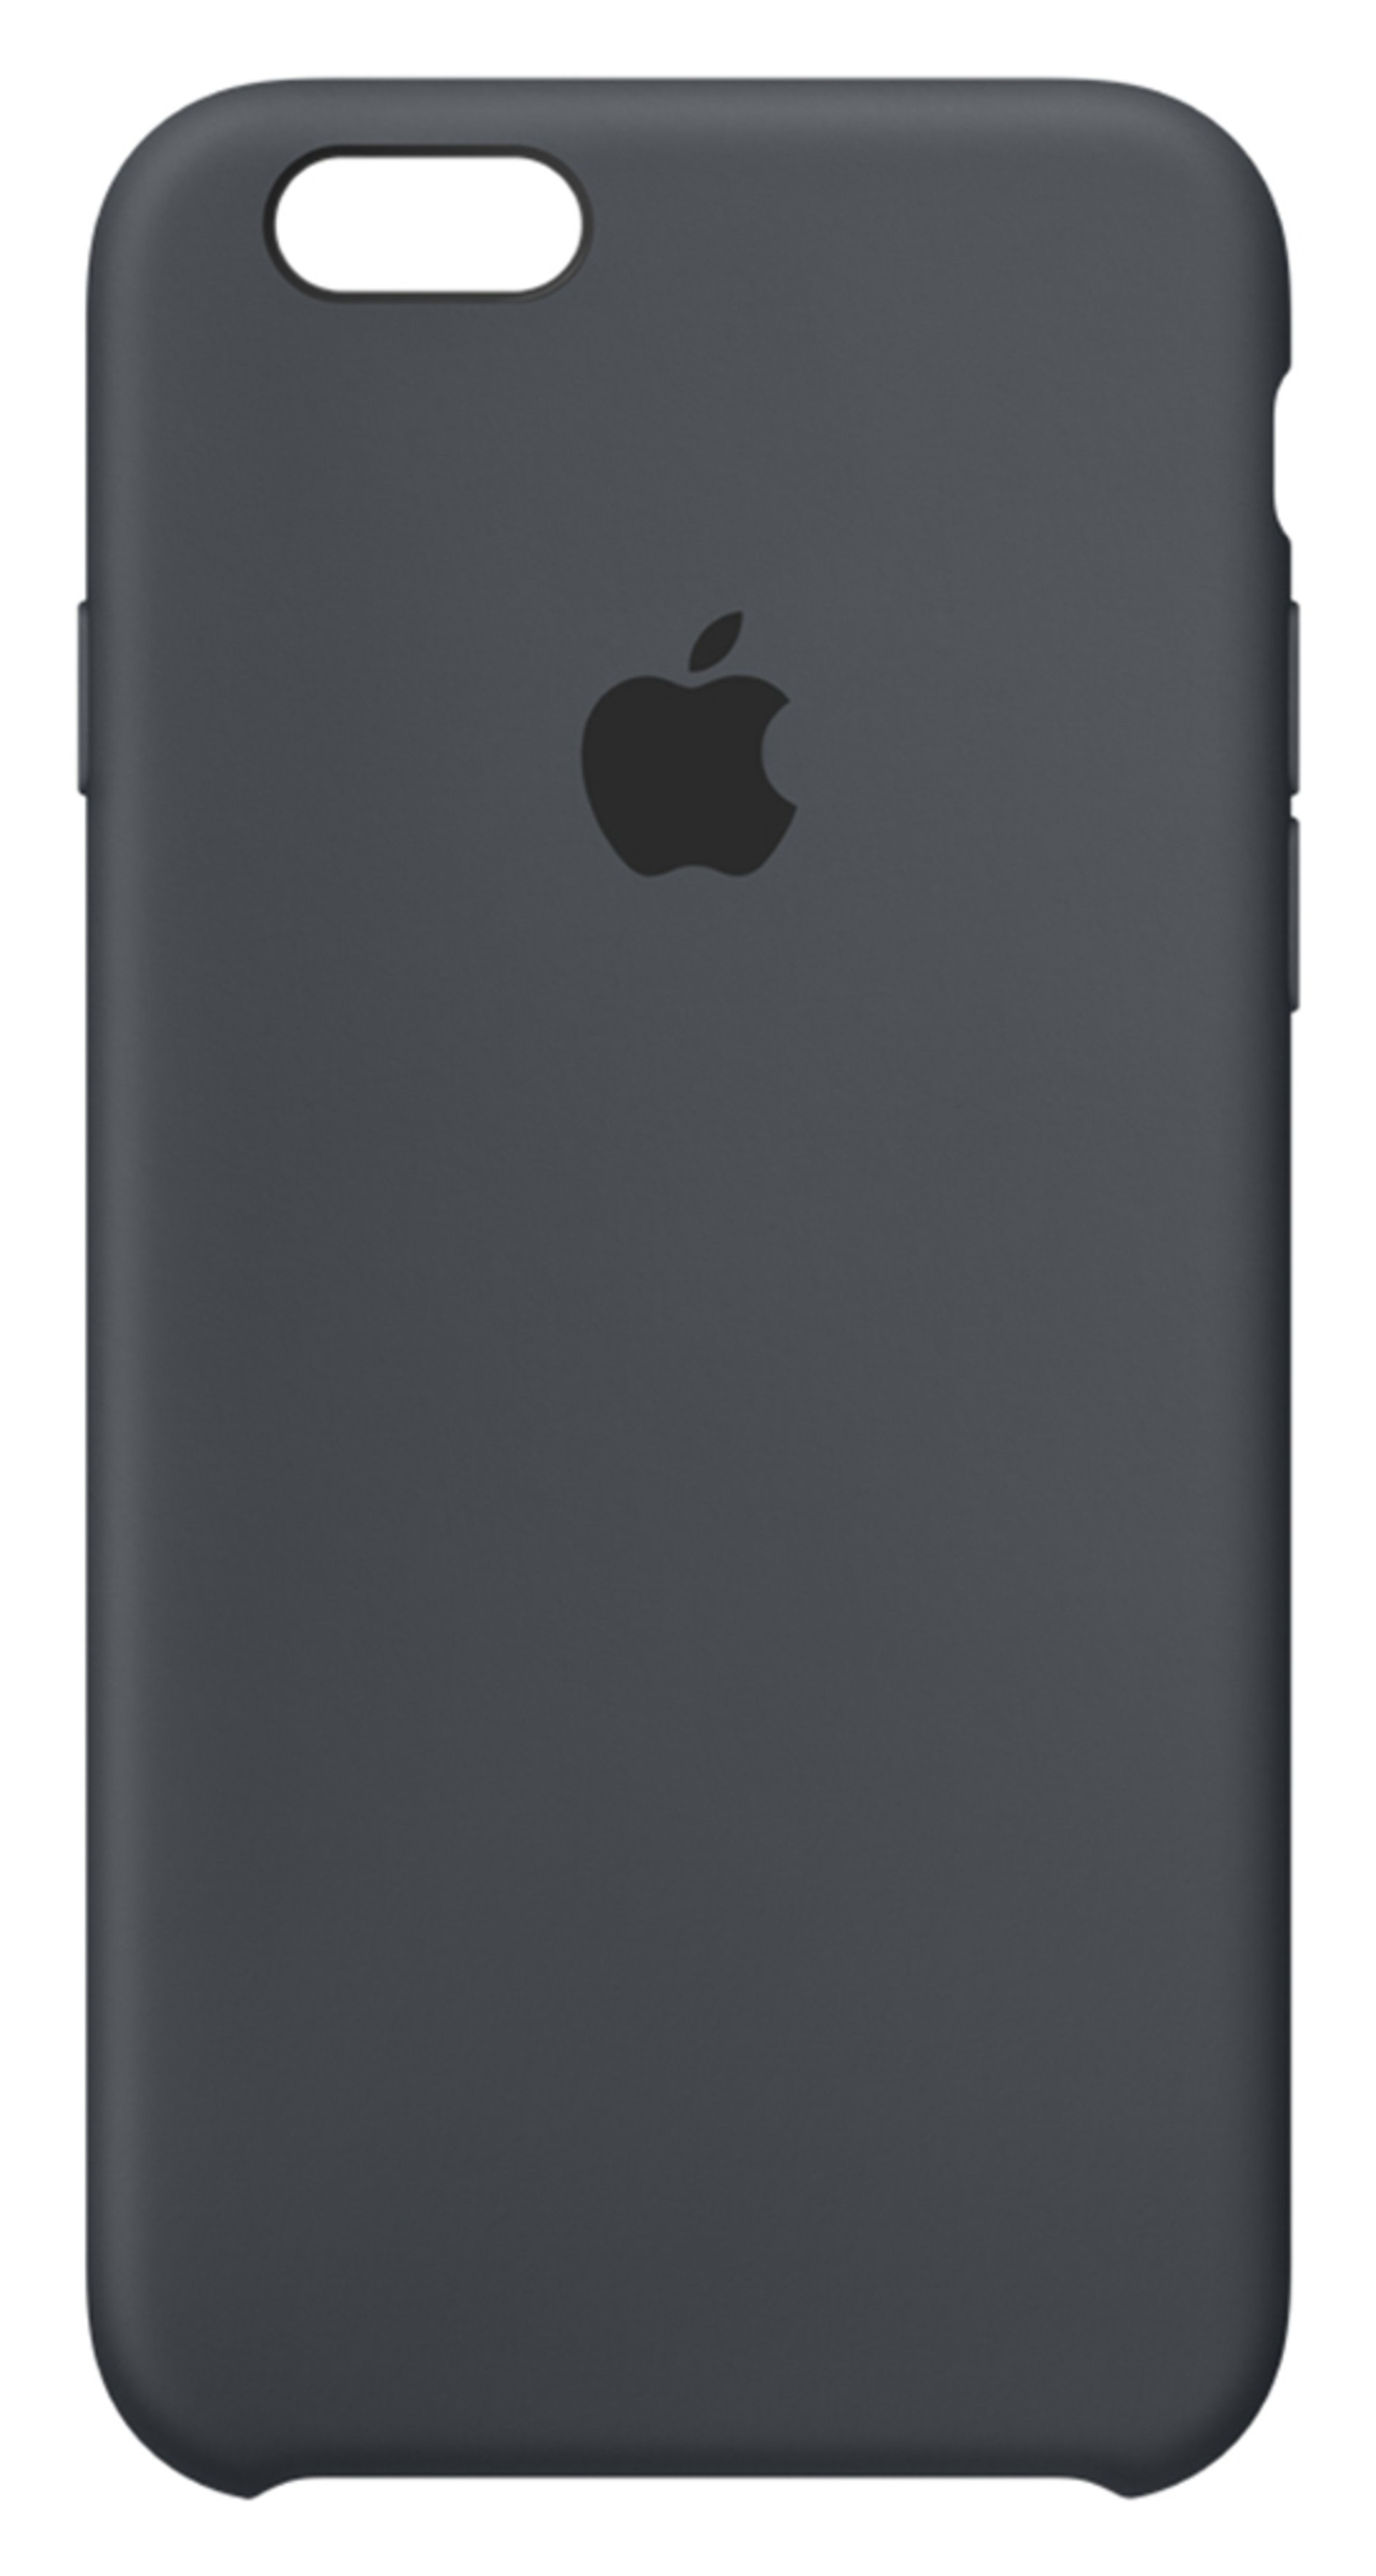 Apple iPhone 6 6s Silicone Case Charcoal Grey cheapest retail price